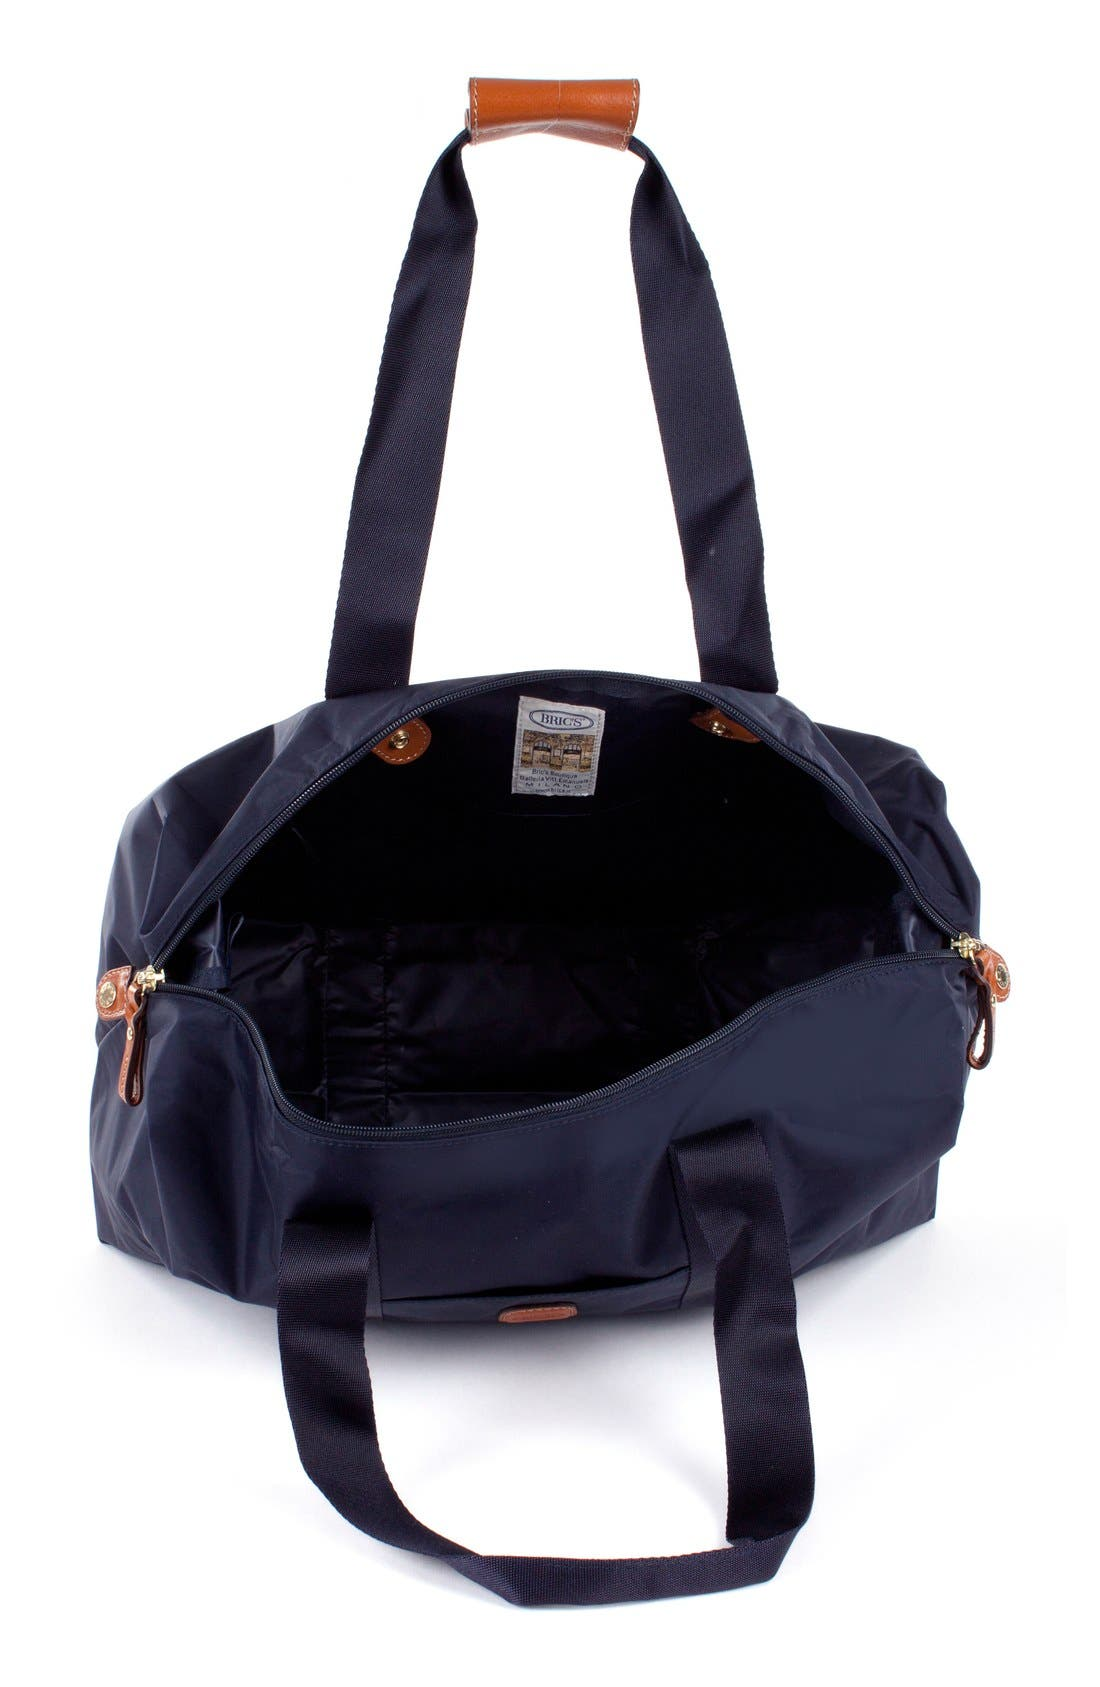 'X-Bag' Folding Duffel Bag,                             Alternate thumbnail 4, color,                             Navy